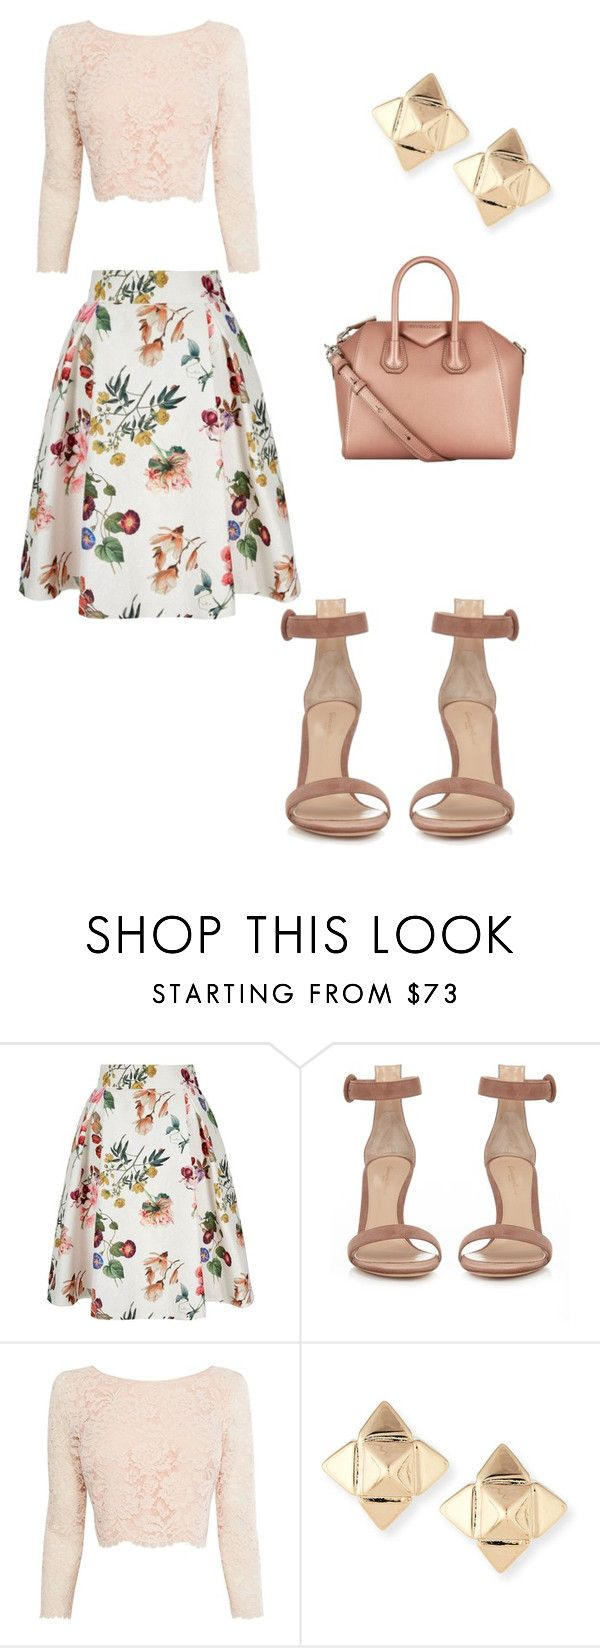 """Sunday's Best"" by williamsnl ❤ liked on Polyvore featuring Yumi, Gianvito Rossi, Coast, Valentino and Givenchy"